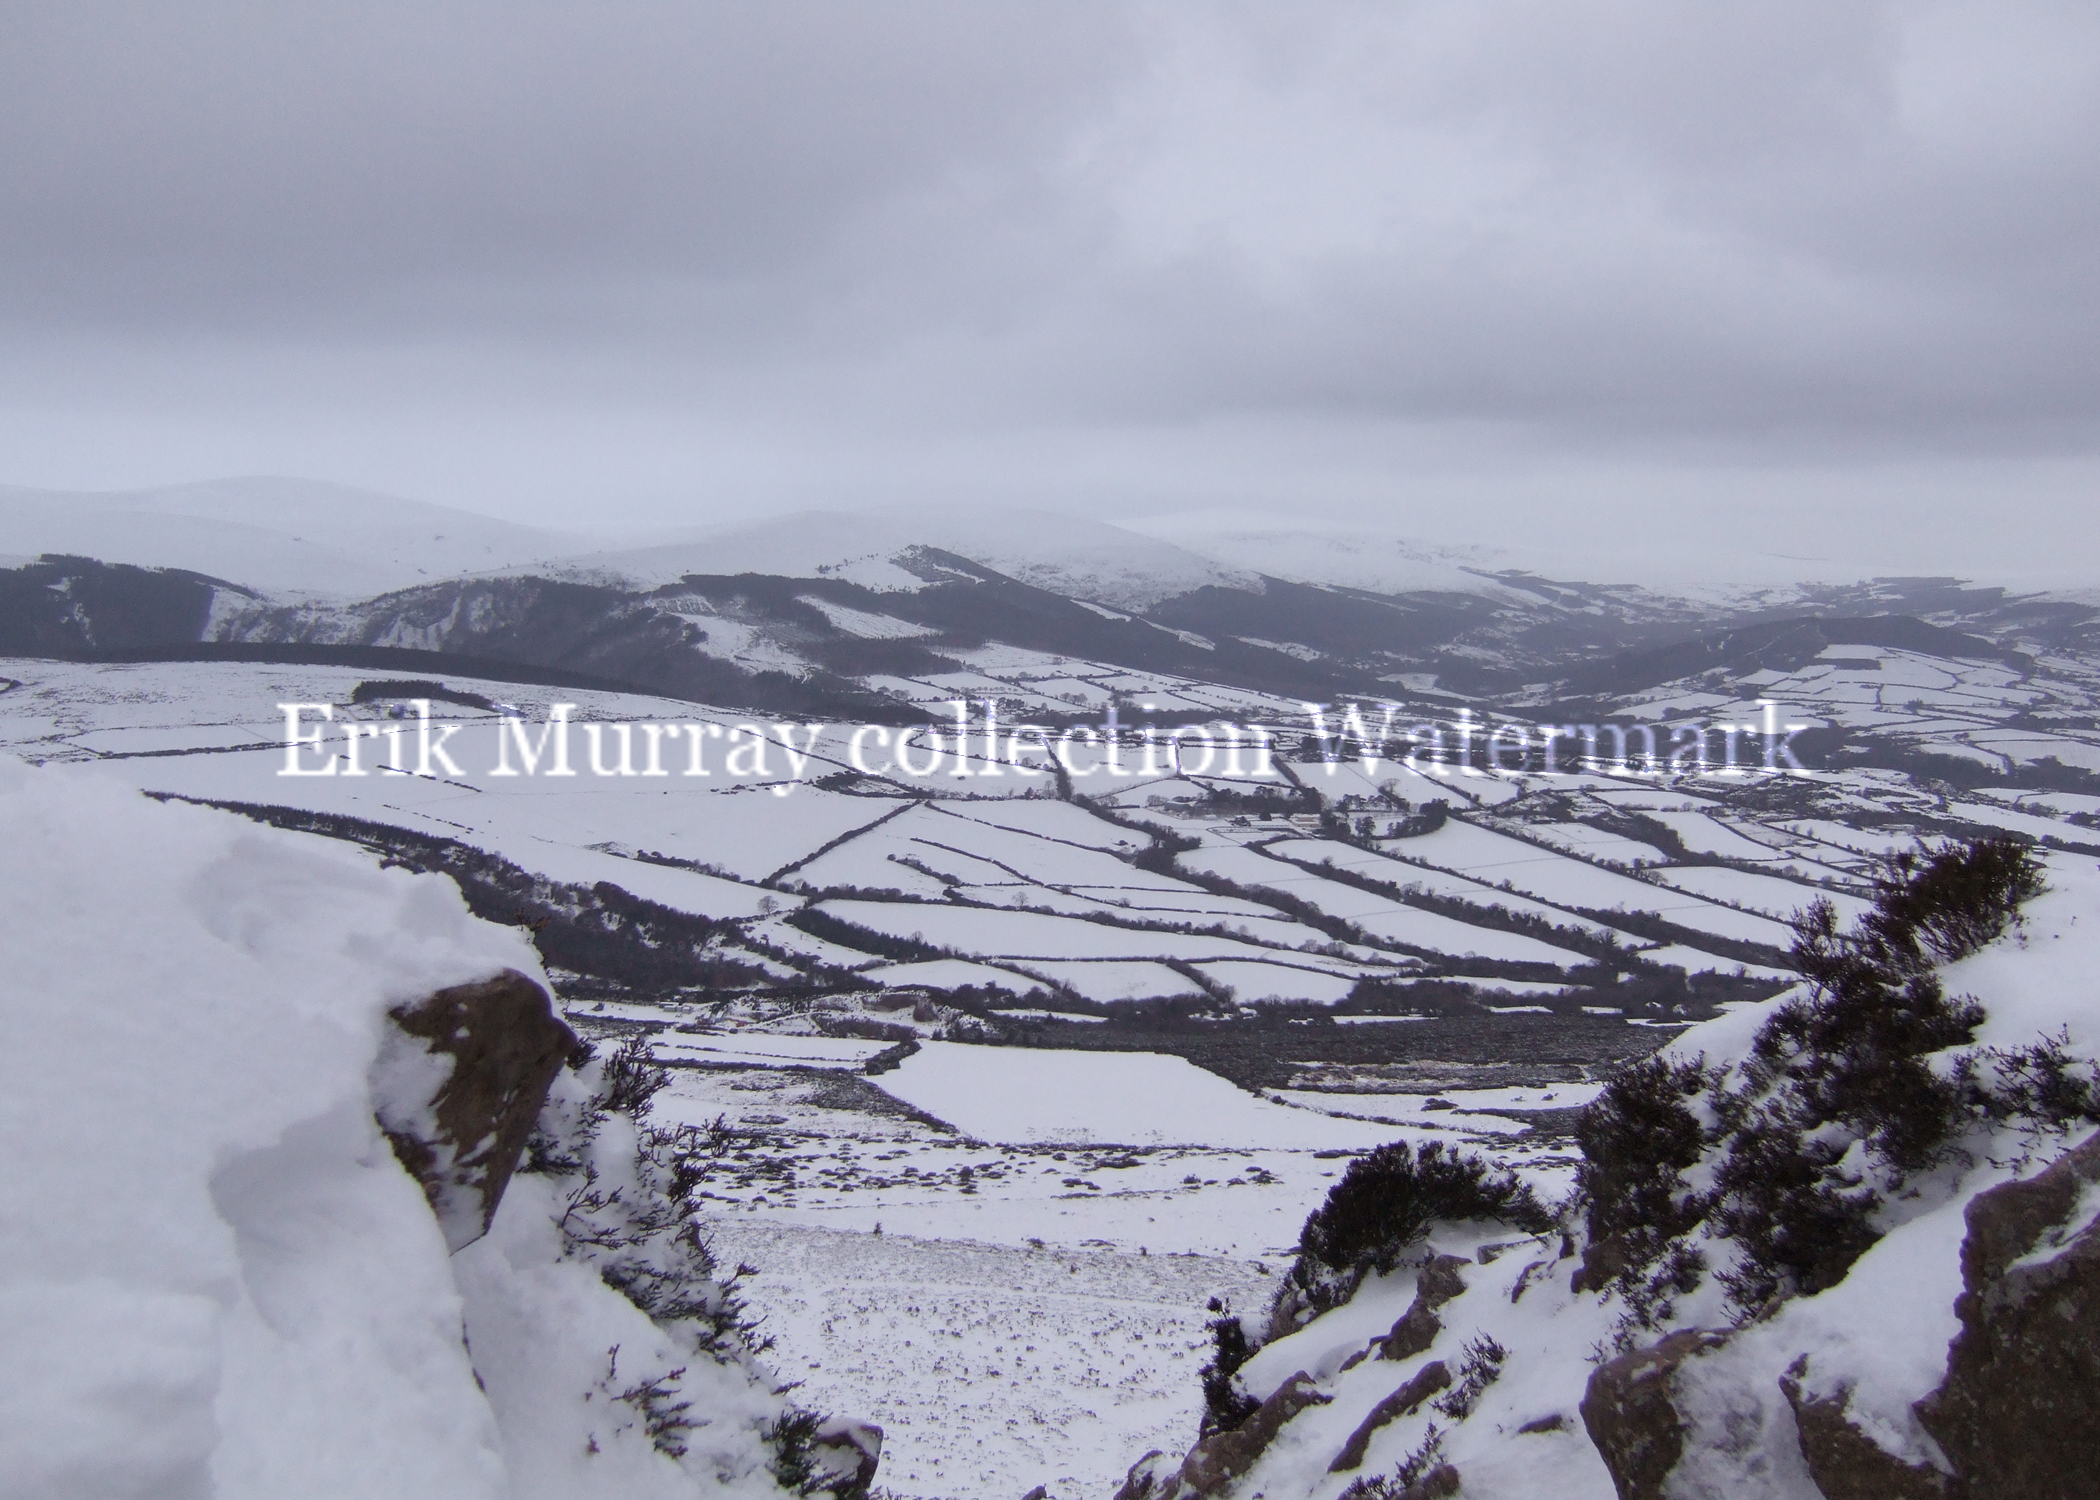 Wicklow Mountains Snow 2010 (Image 5) no boarder